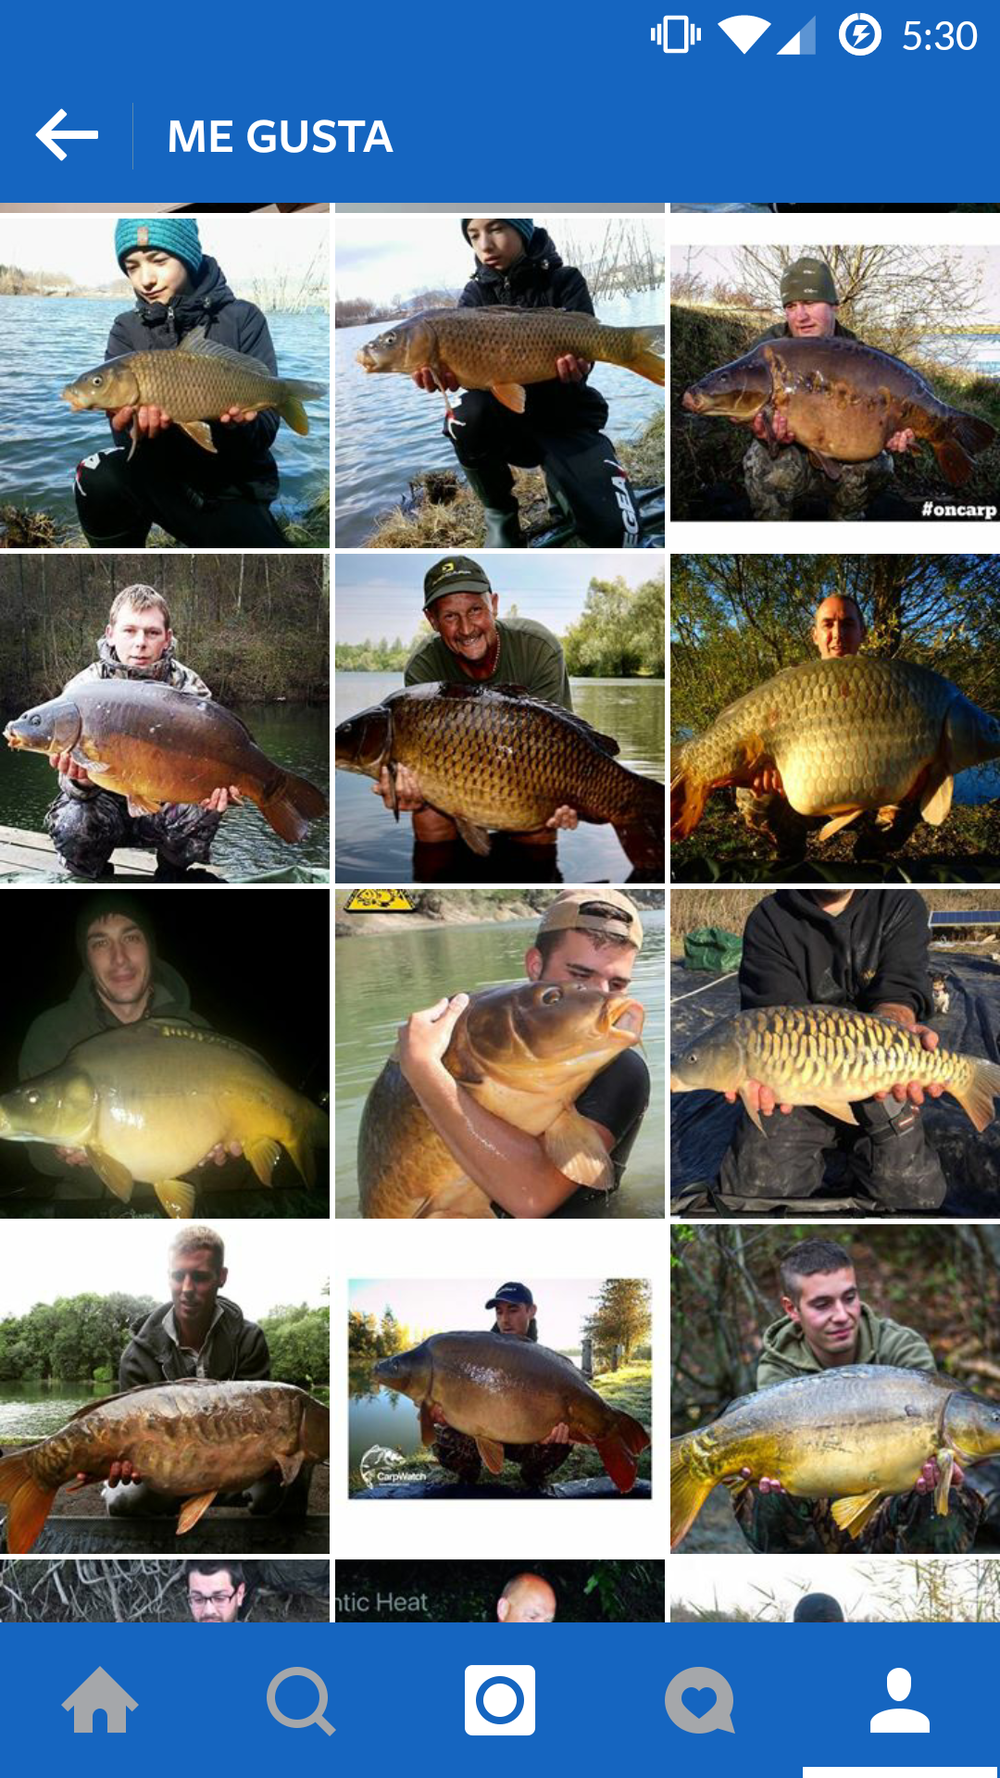 Carp anglers on on instagram.